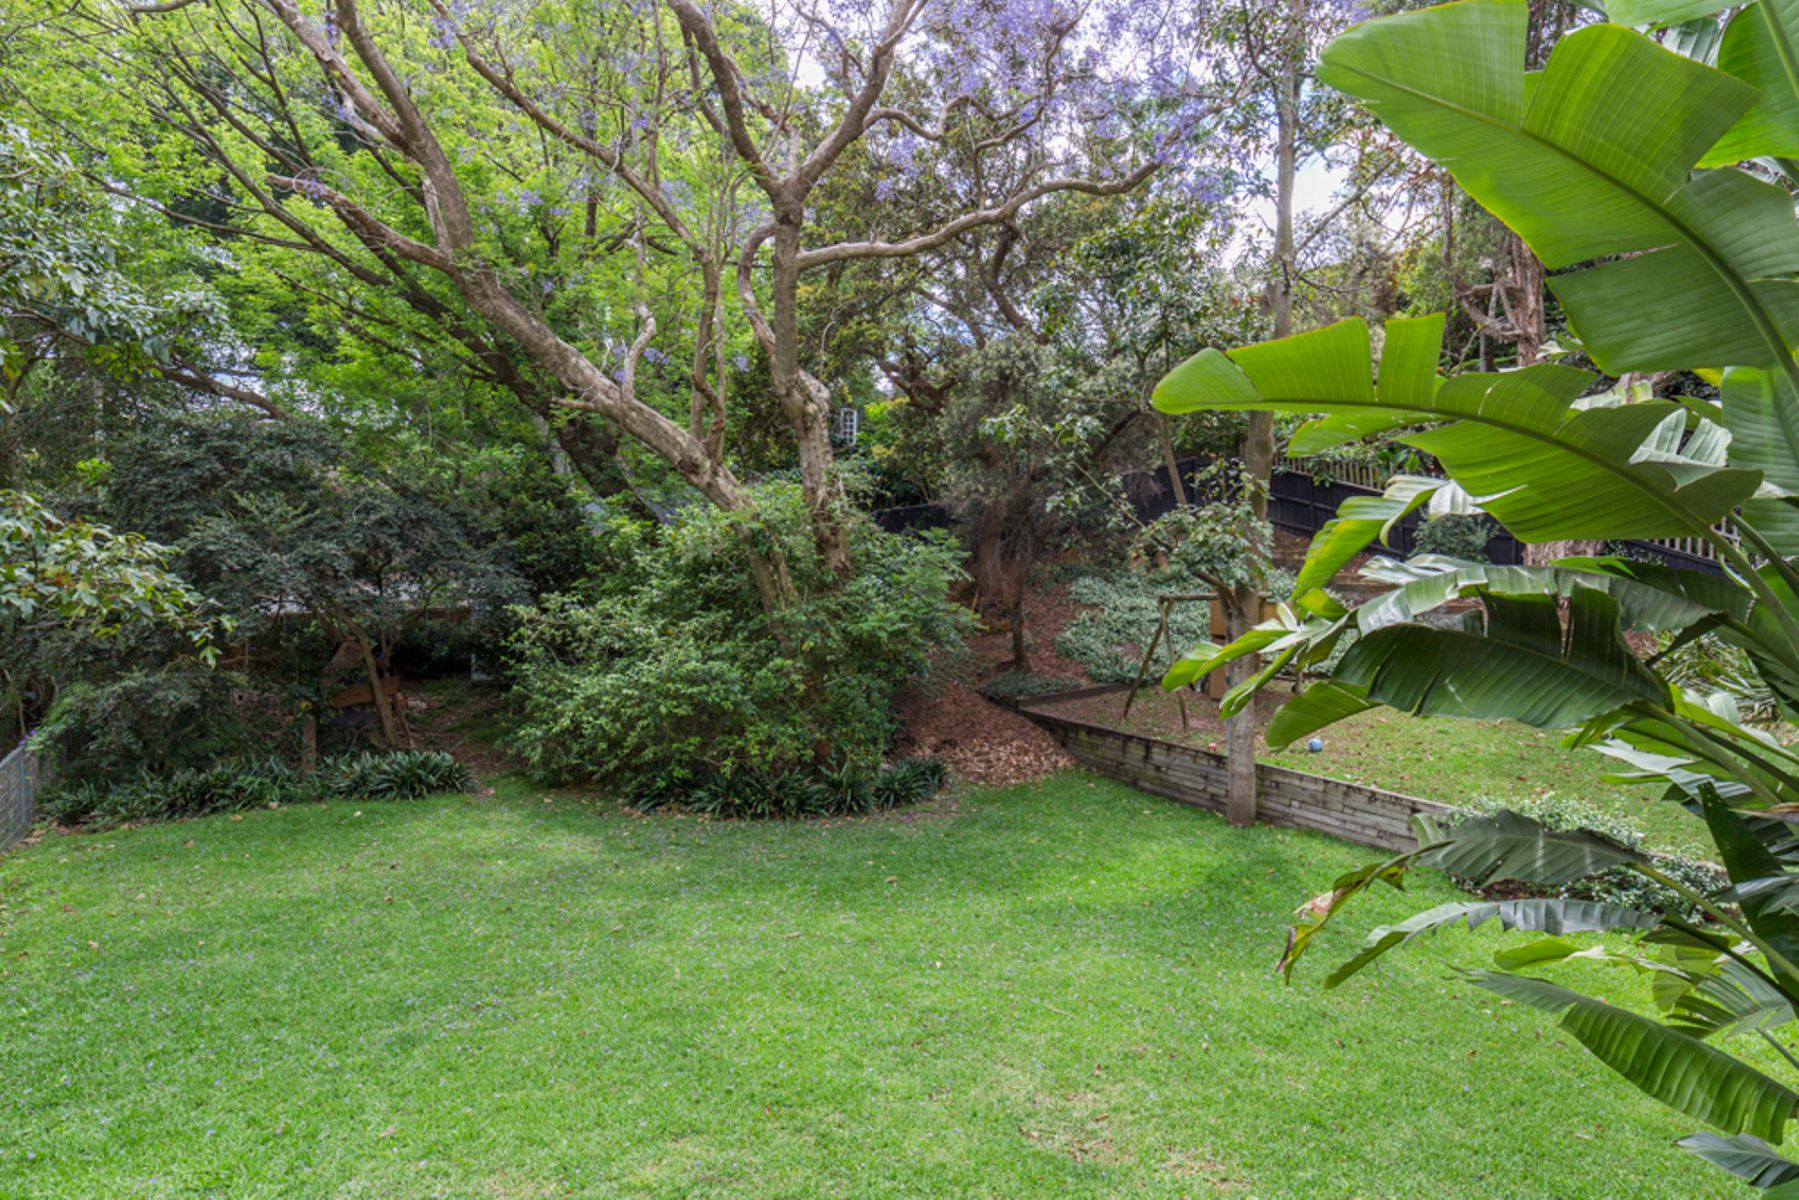 1st City 16 Hopetoun Avenue Vaucluse Nsw 2030